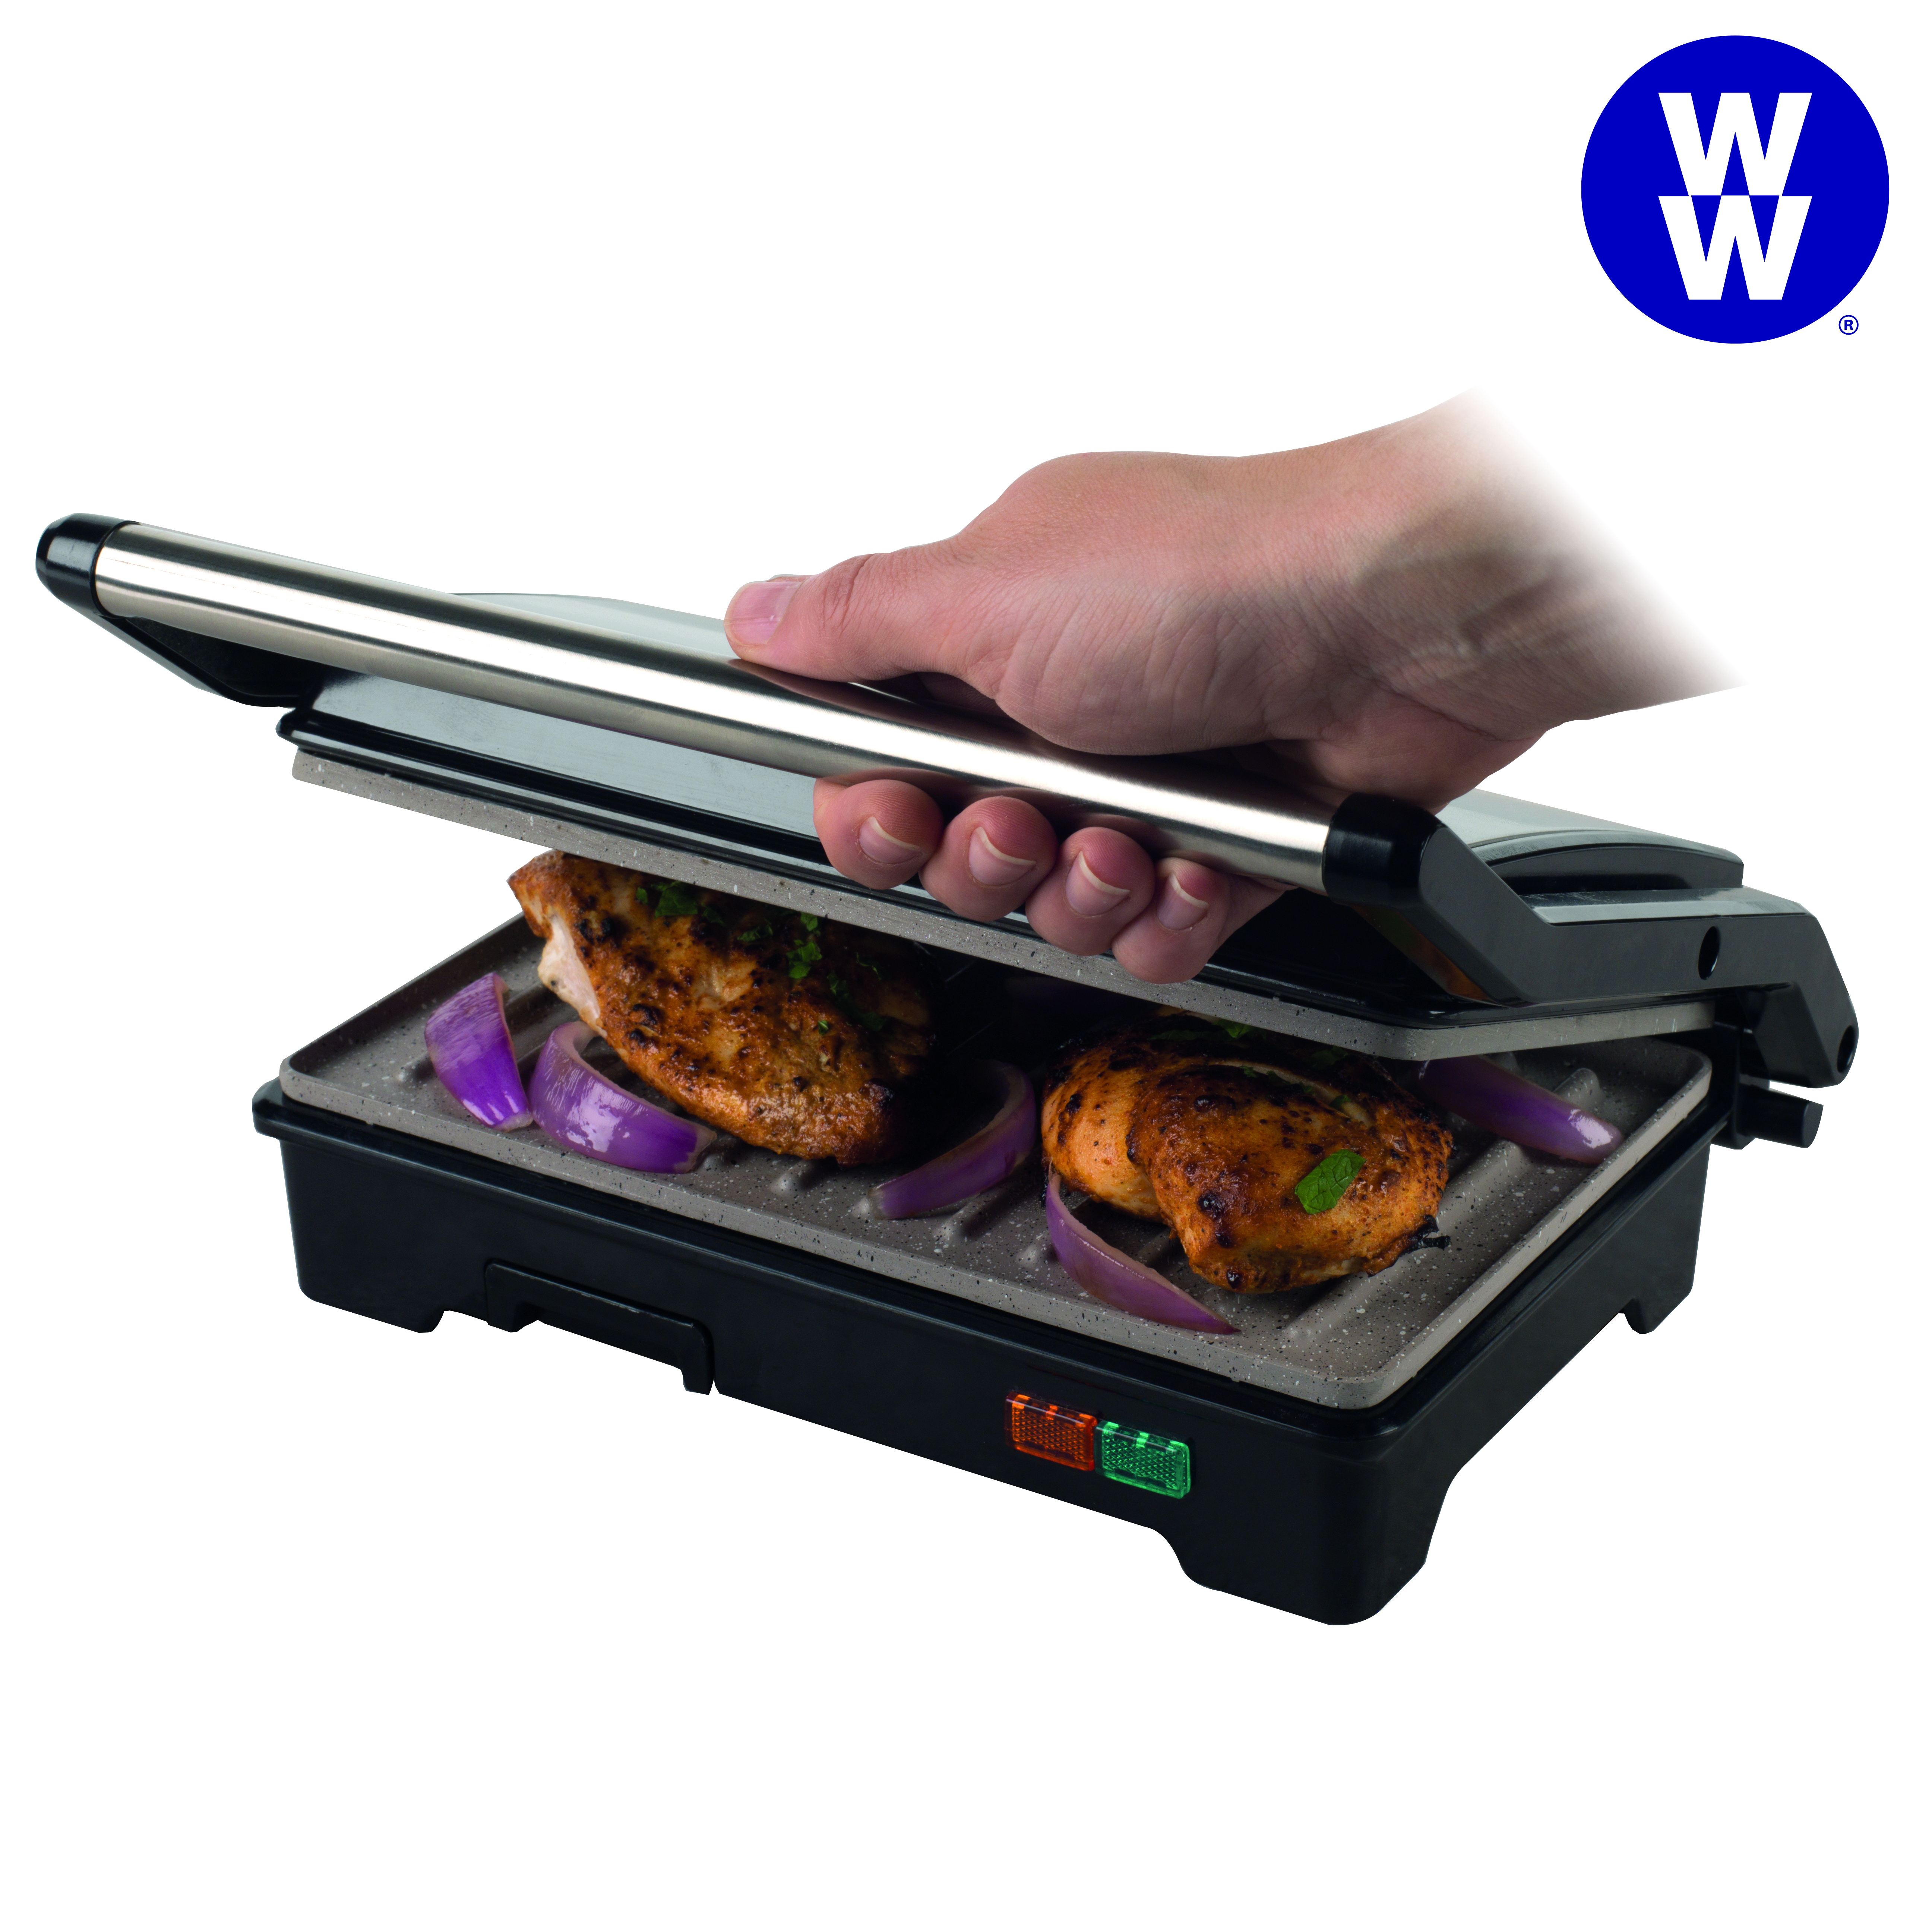 Weight Watchers EK2759WW Fold-Out Health Grill with Marble Non-Stick Coating, 750 W Thumbnail 8